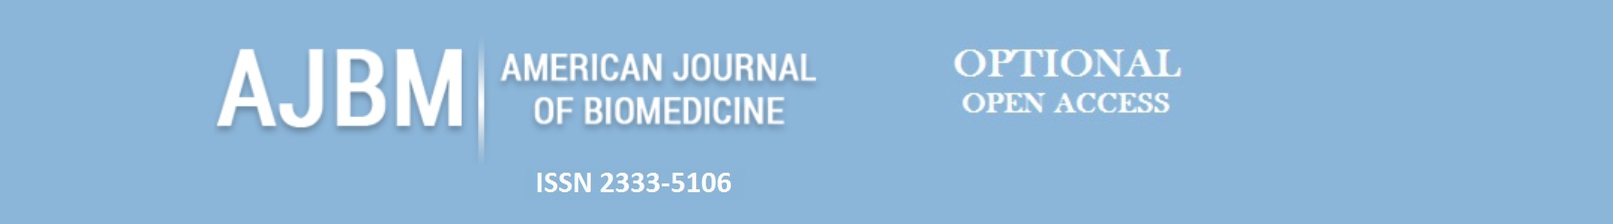 American Journal of Biomedicine